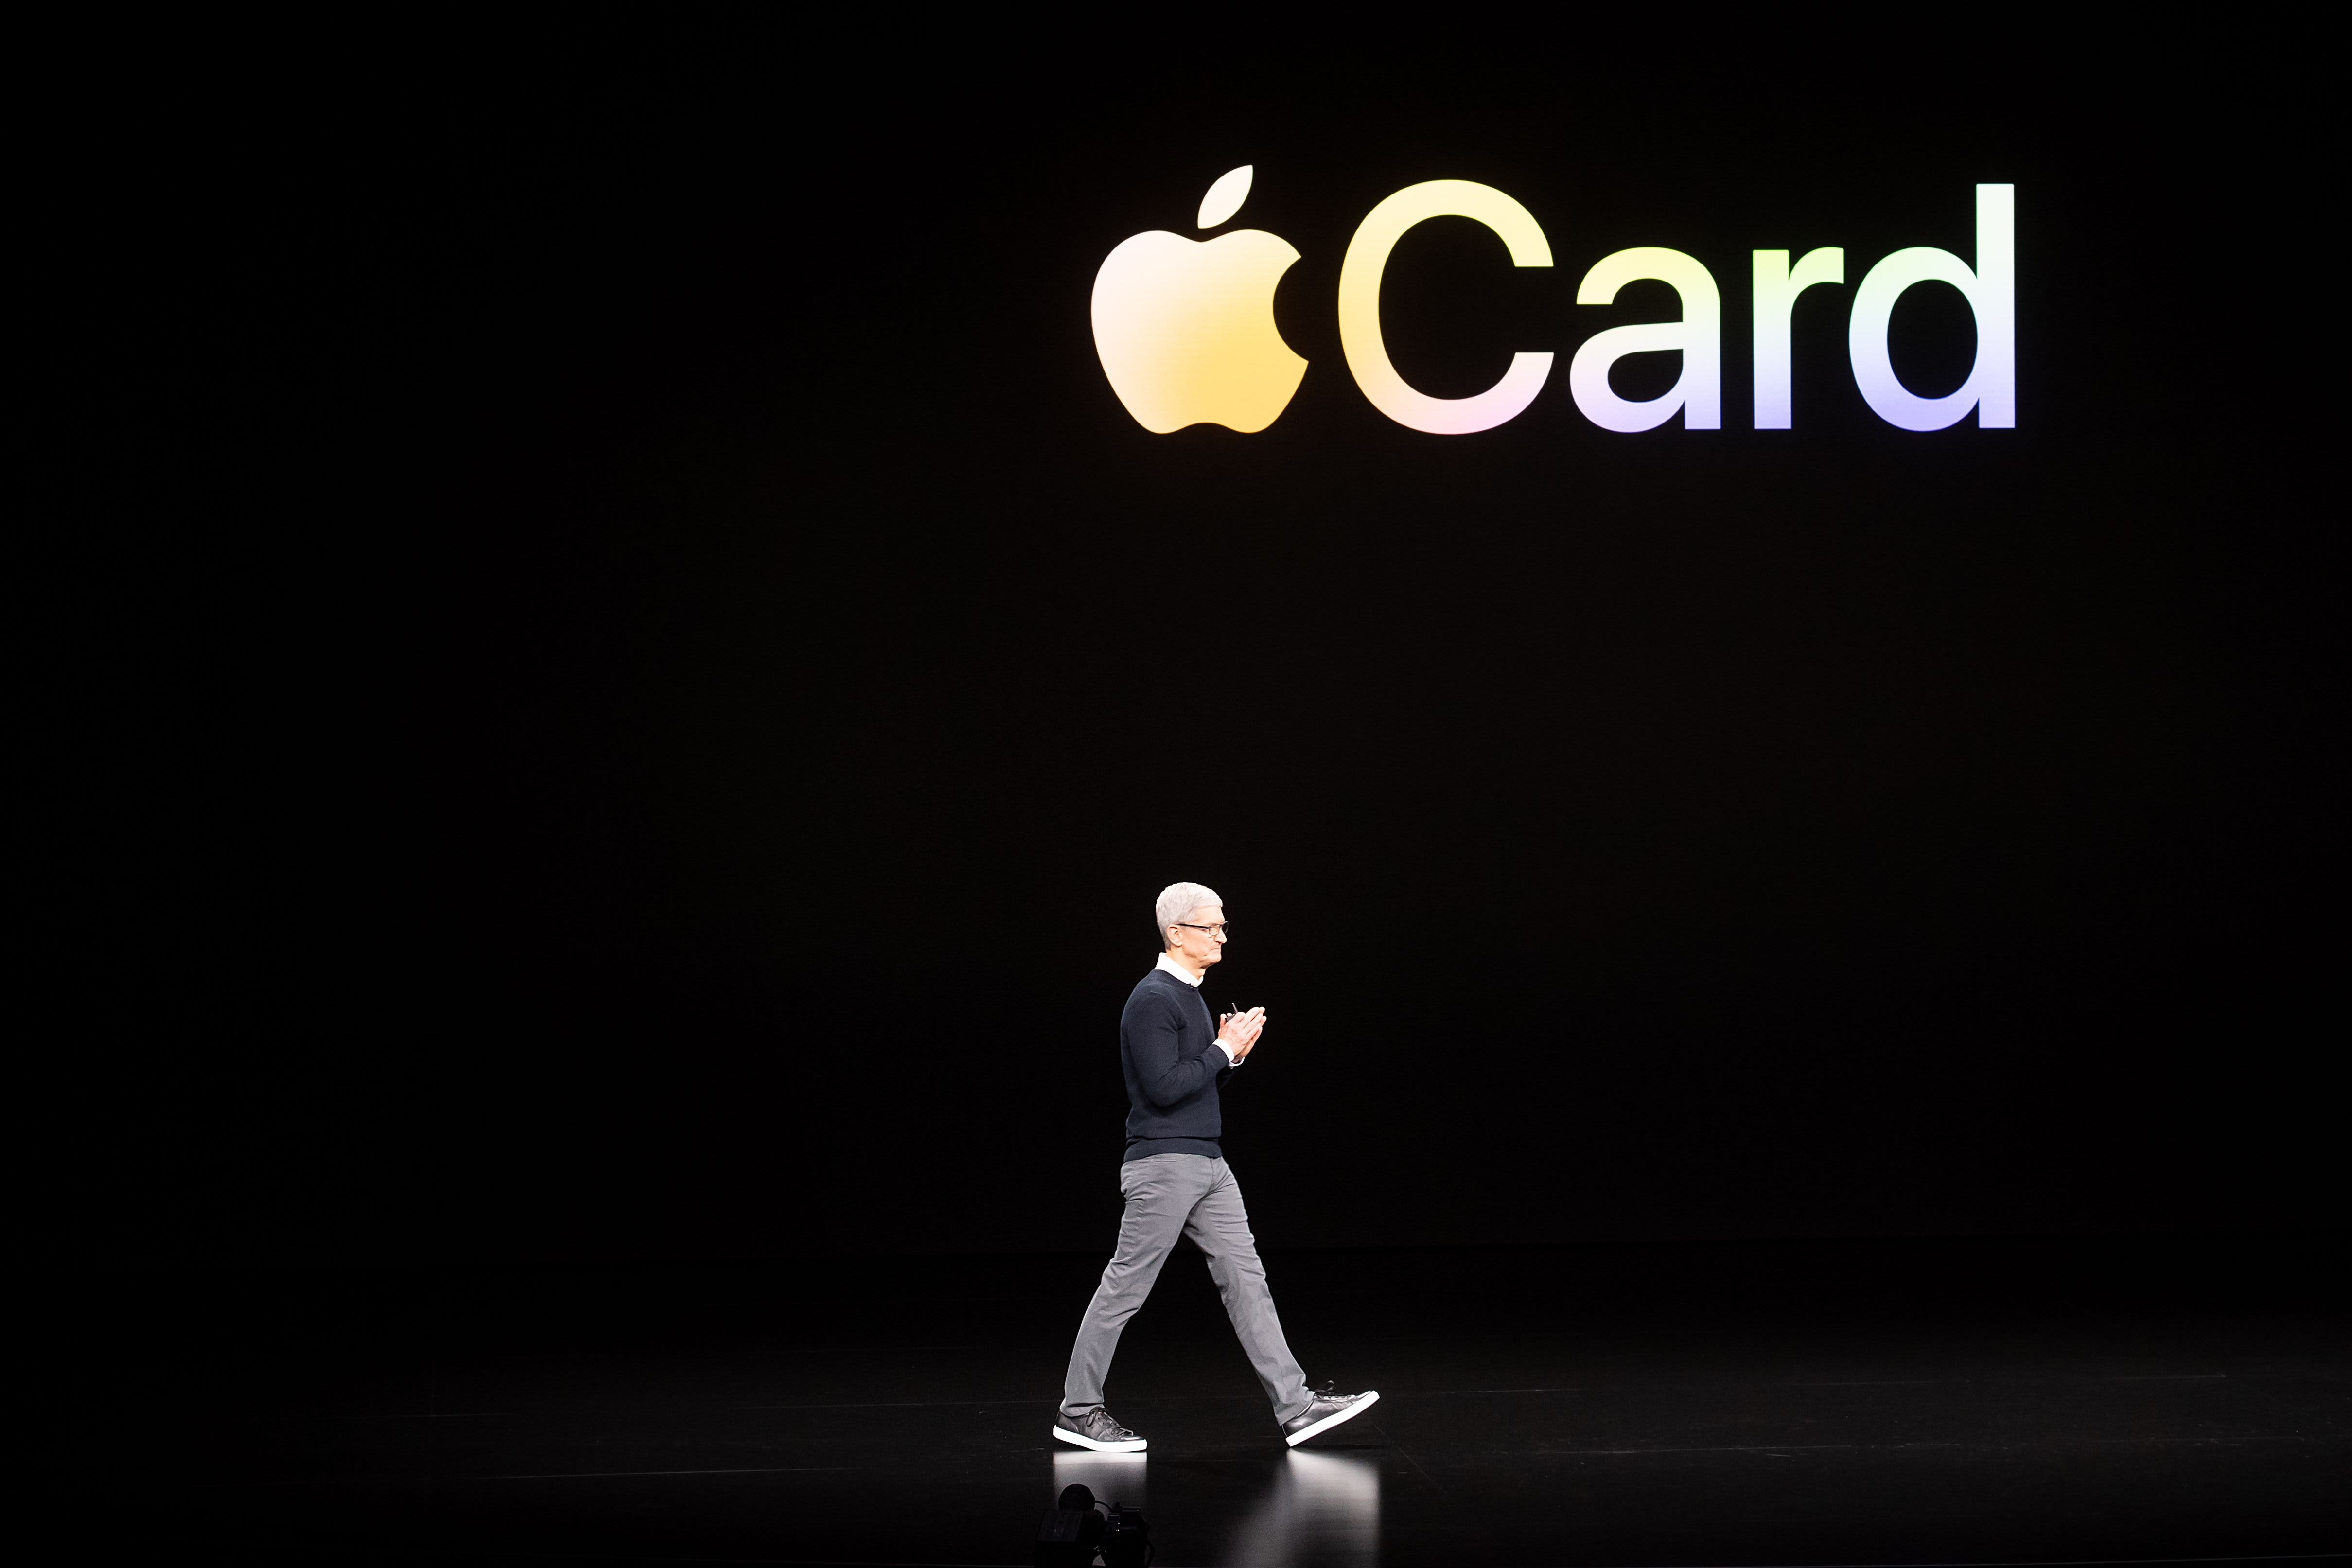 Goldman Sachs, bank of the rich and powerful, is dipping into subprime lending with Apple Card